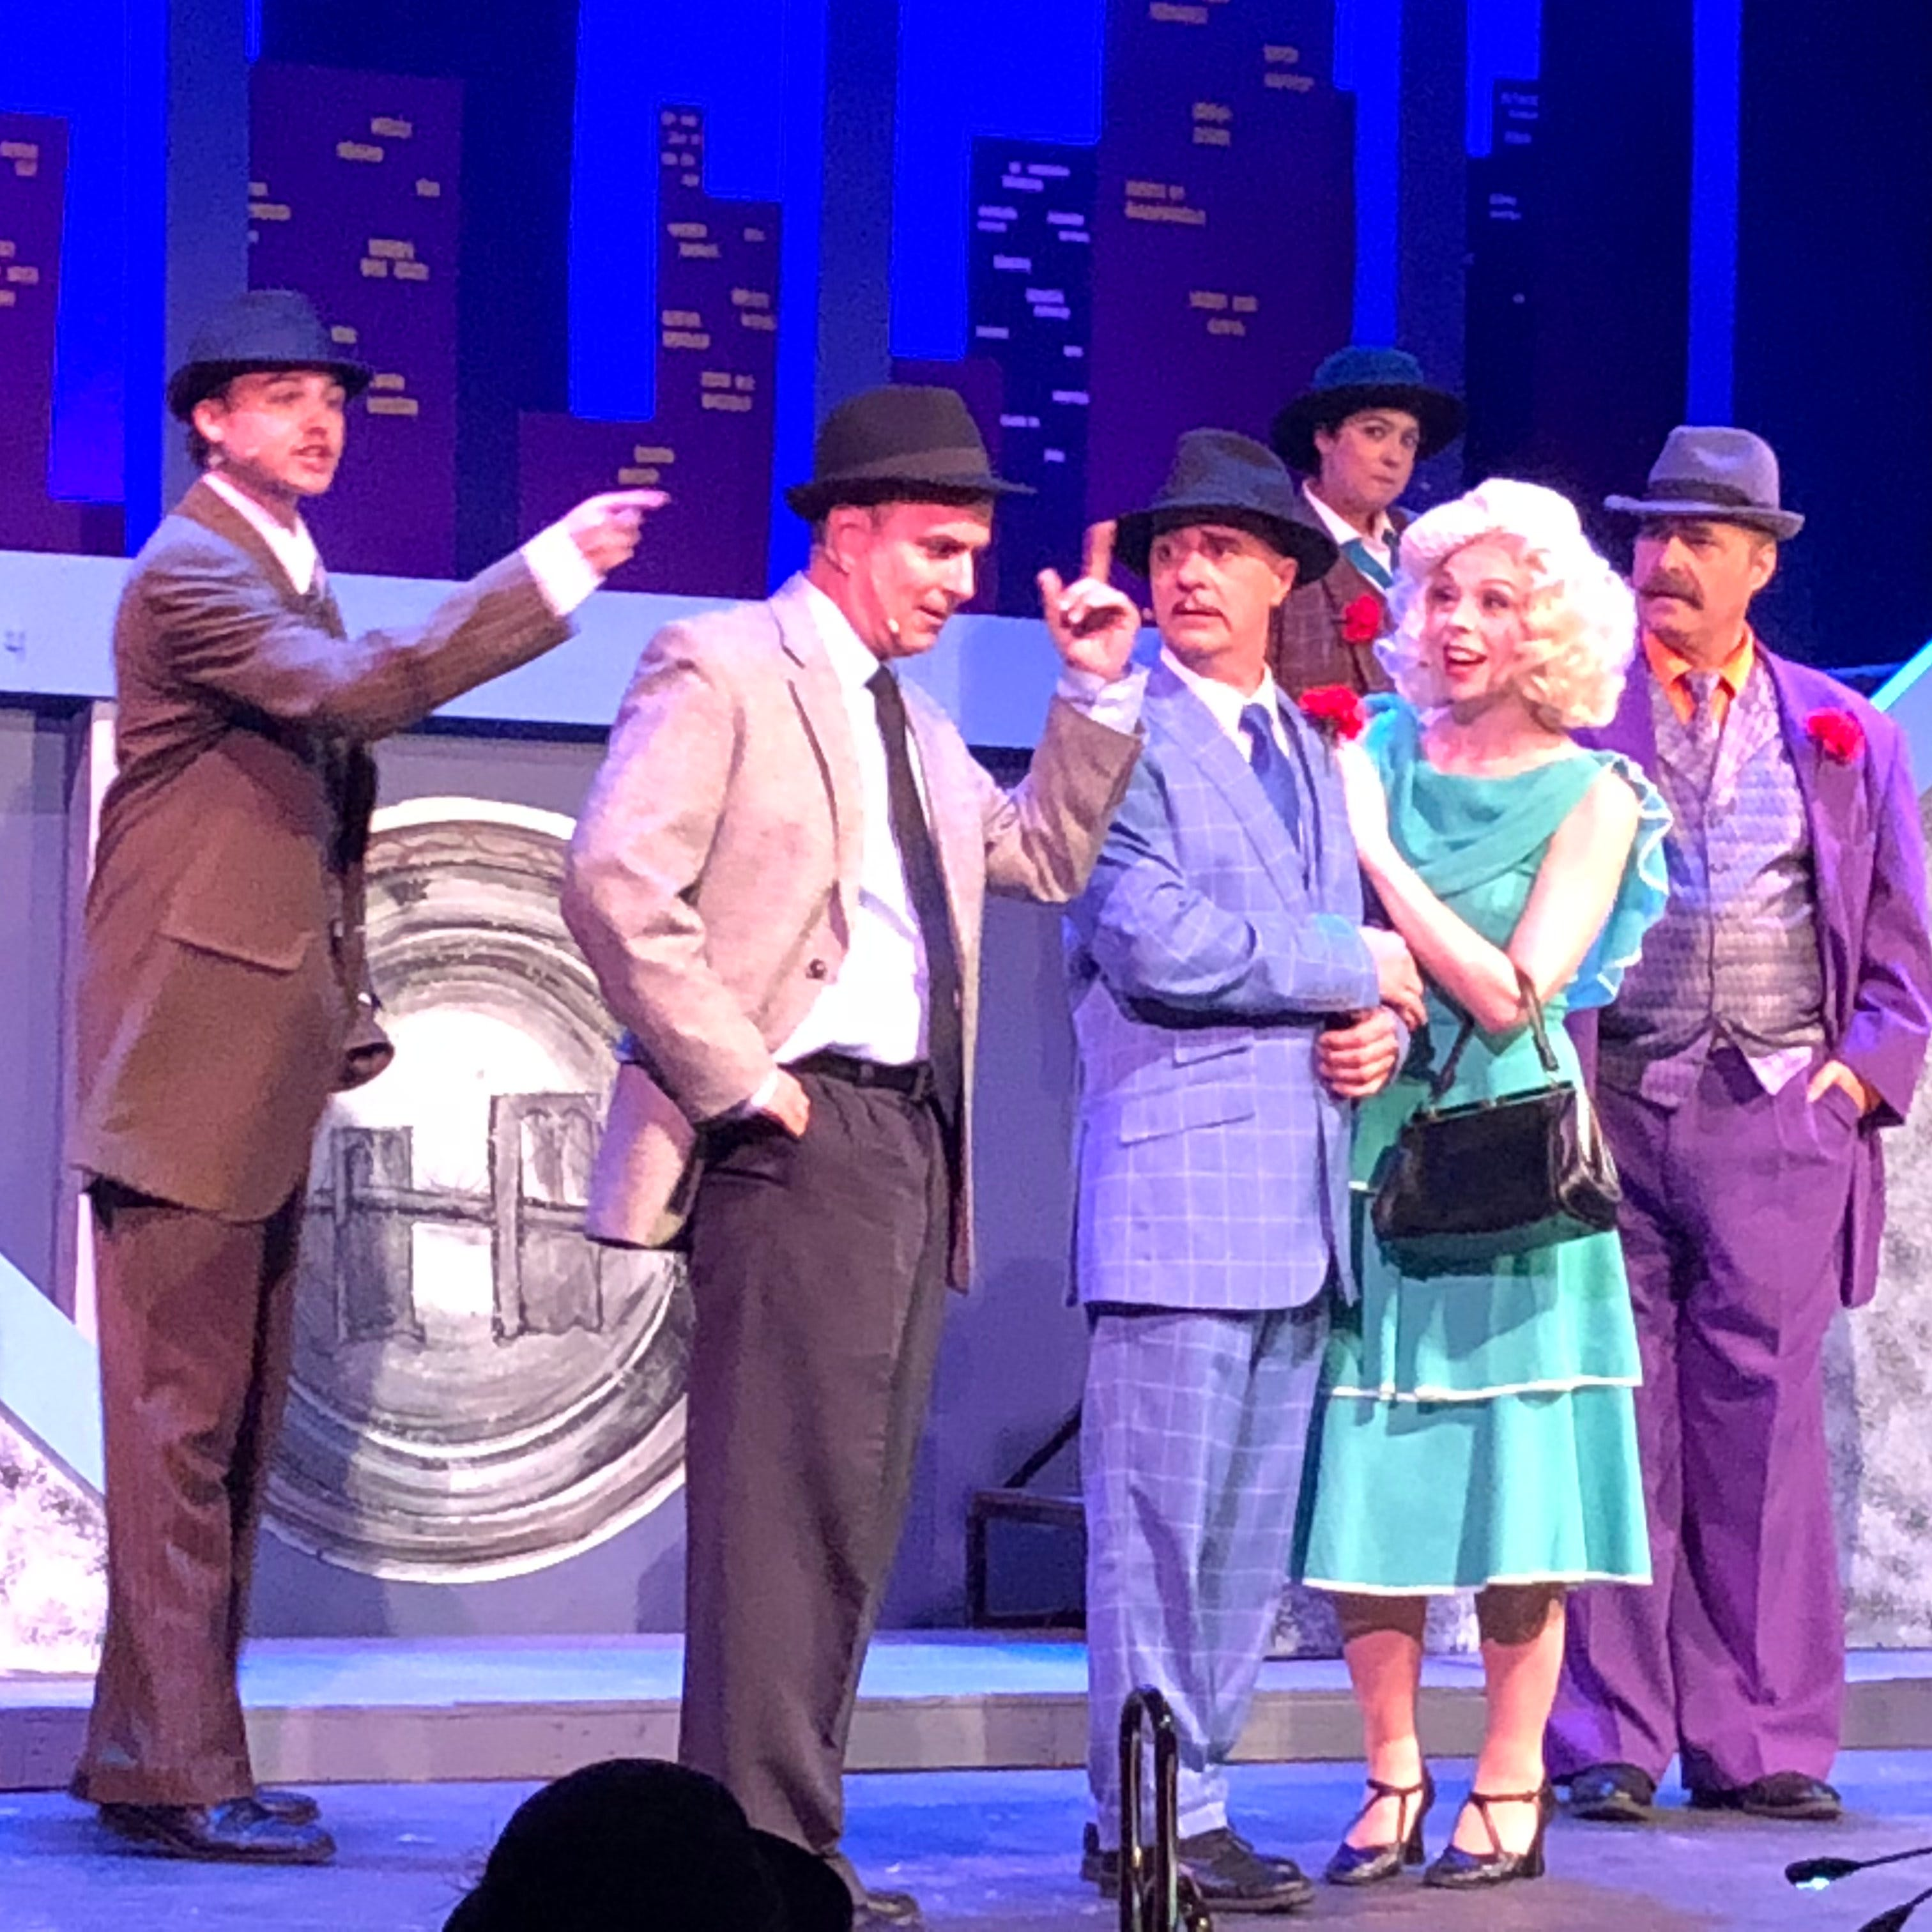 Theater review: 'Guys and Dolls' brings high-quality hijinks to Simi Valley